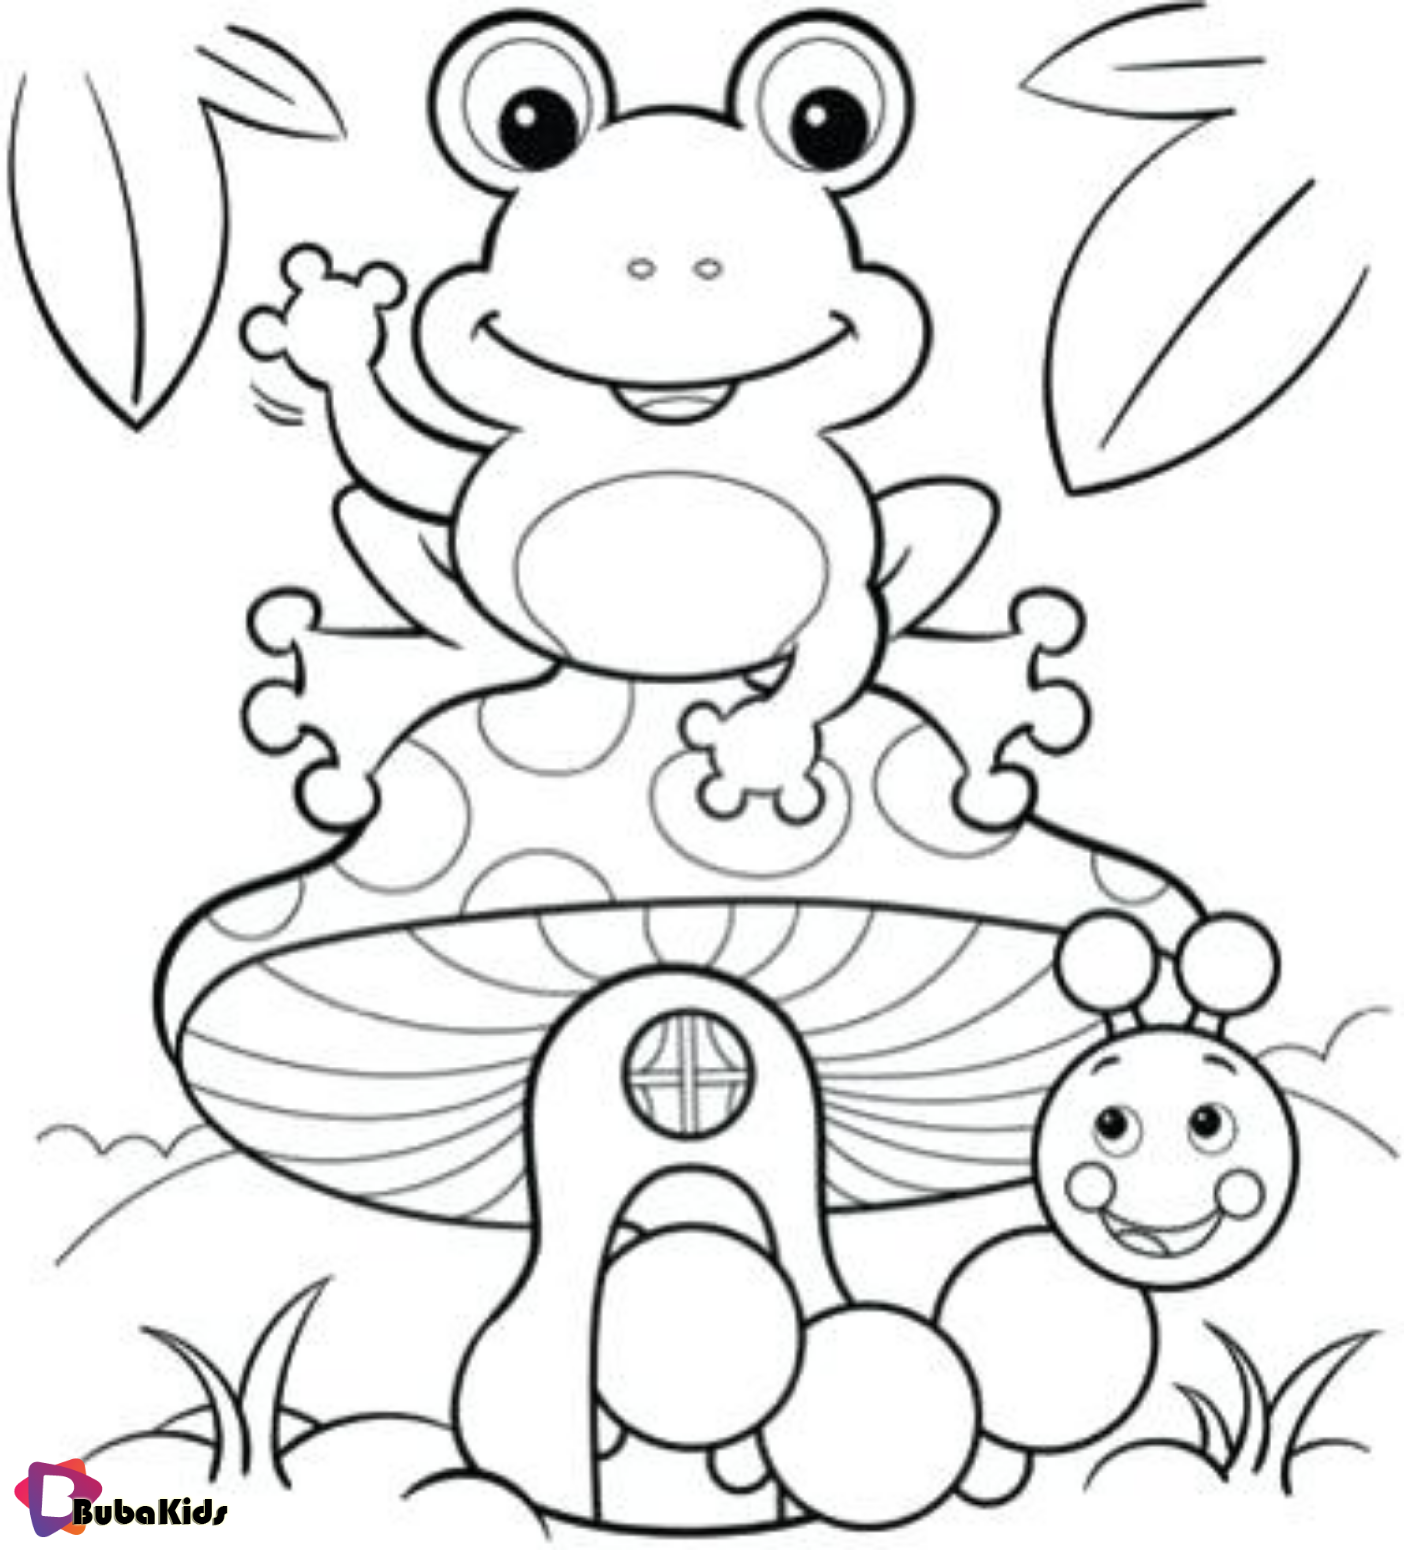 Free Printable Frog Coloring Pages Frog Toad Frog Toad Cartoon Coloring Pages Frog Coloring Pages Spring Coloring Pages Free Coloring Pages [ 1550 x 1404 Pixel ]